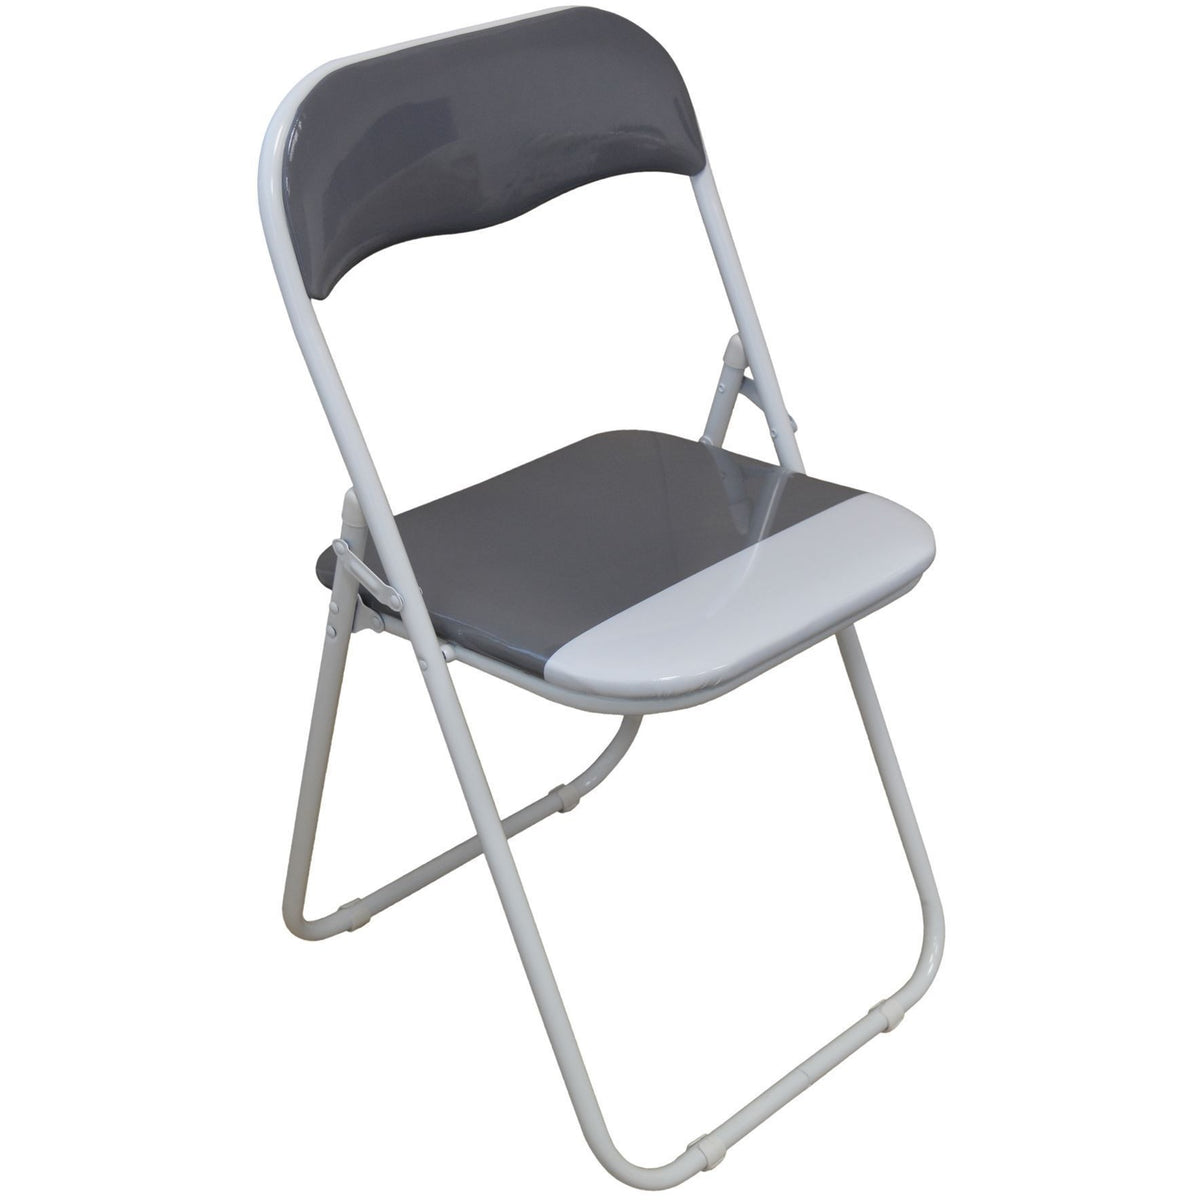 Harbour Housewares Cool Grey / White Padded, Folding, Desk Chair